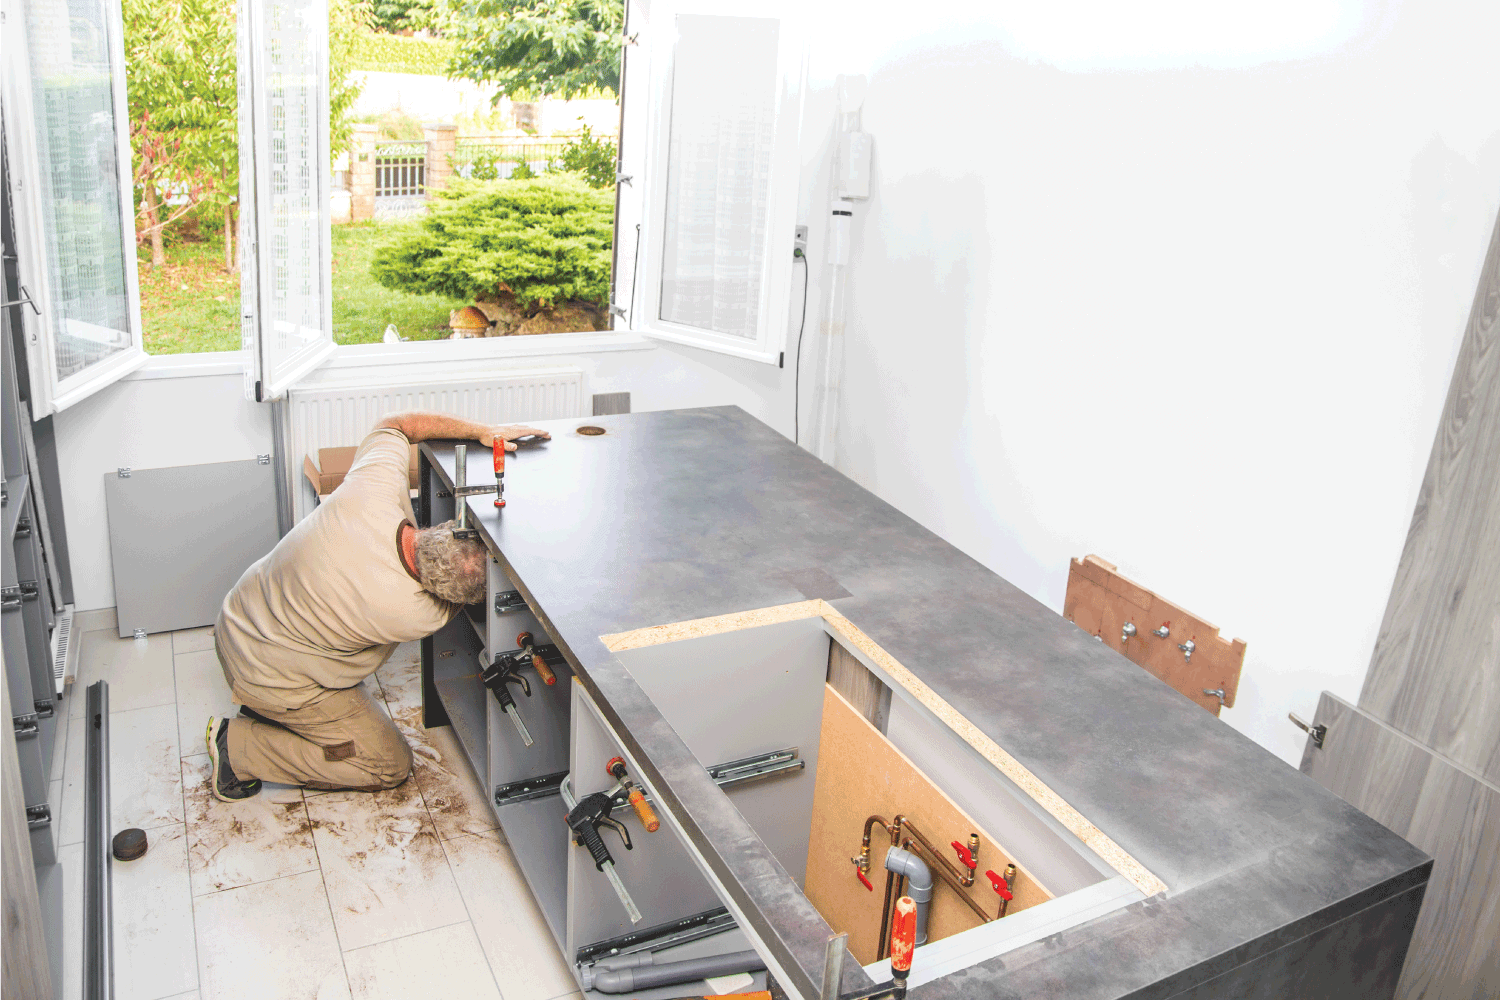 Fitter, manual construction worker man, installing integrated kitchen furniture with clamps and plumbing in a new kitchen custom made with opened window